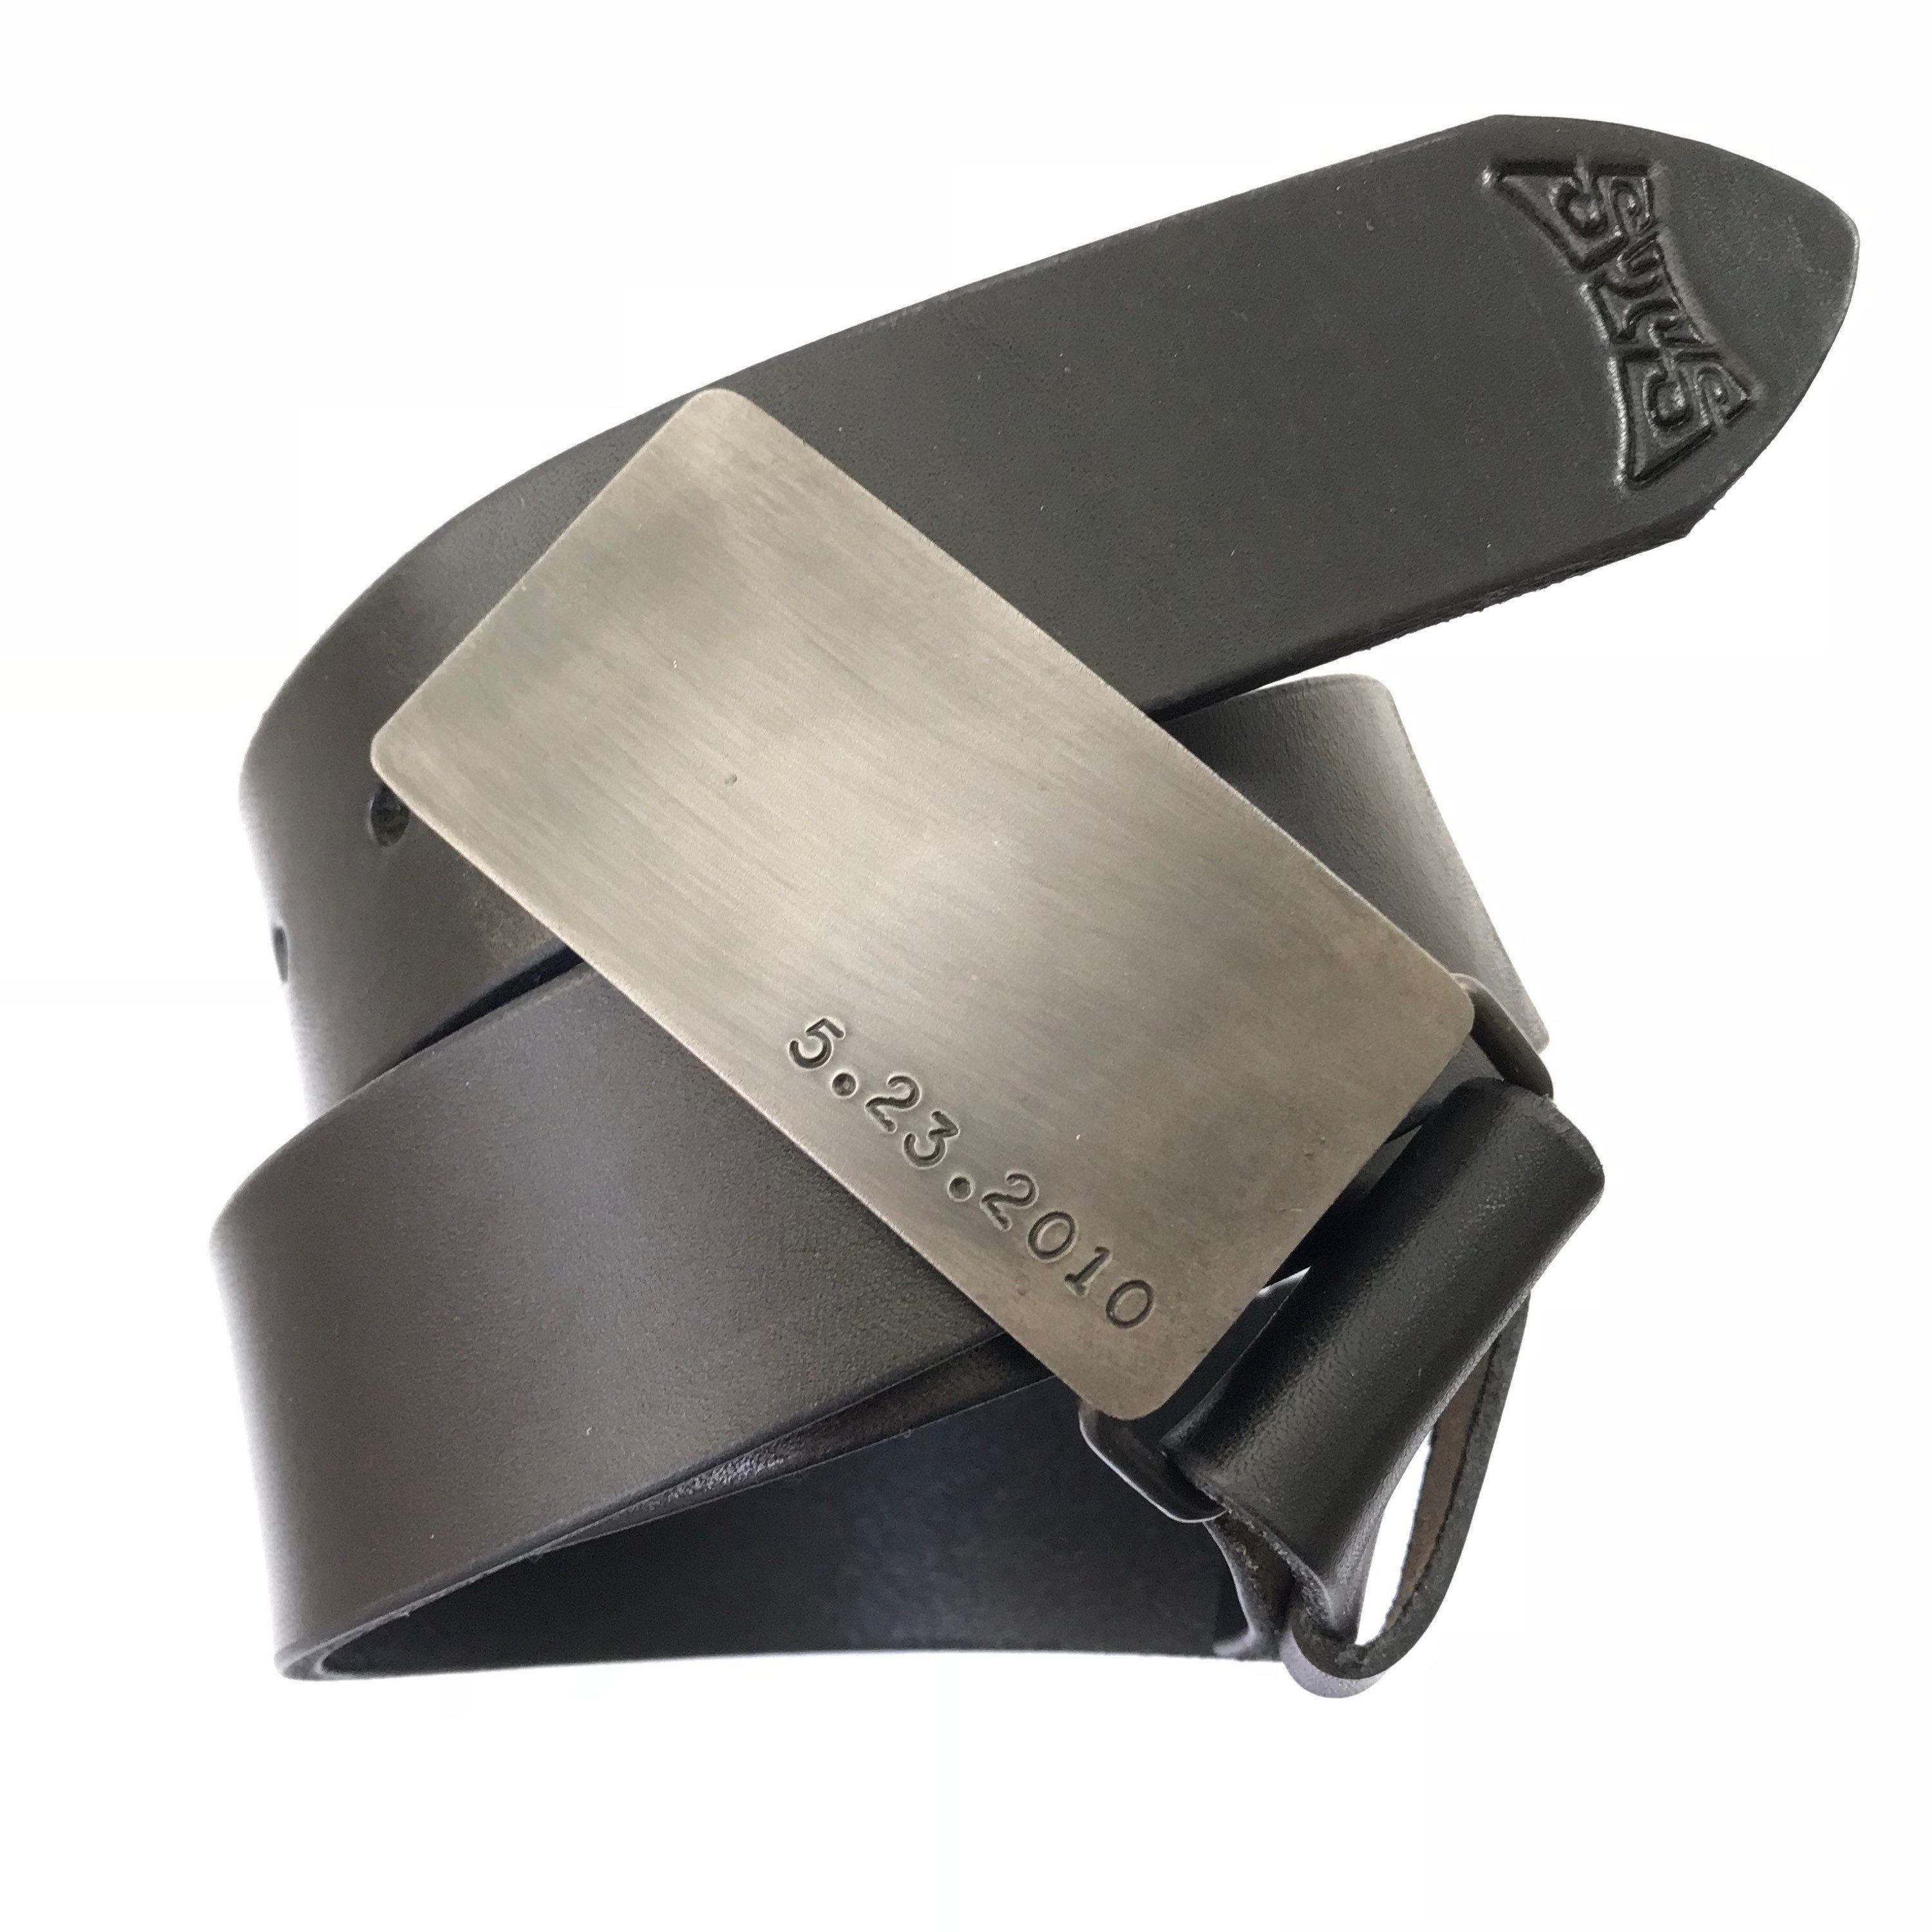 Sixth Wedding Anniversary Gift Ideas For Him: 6th Iron Wedding Anniversary Gift For Him, Steel Belt